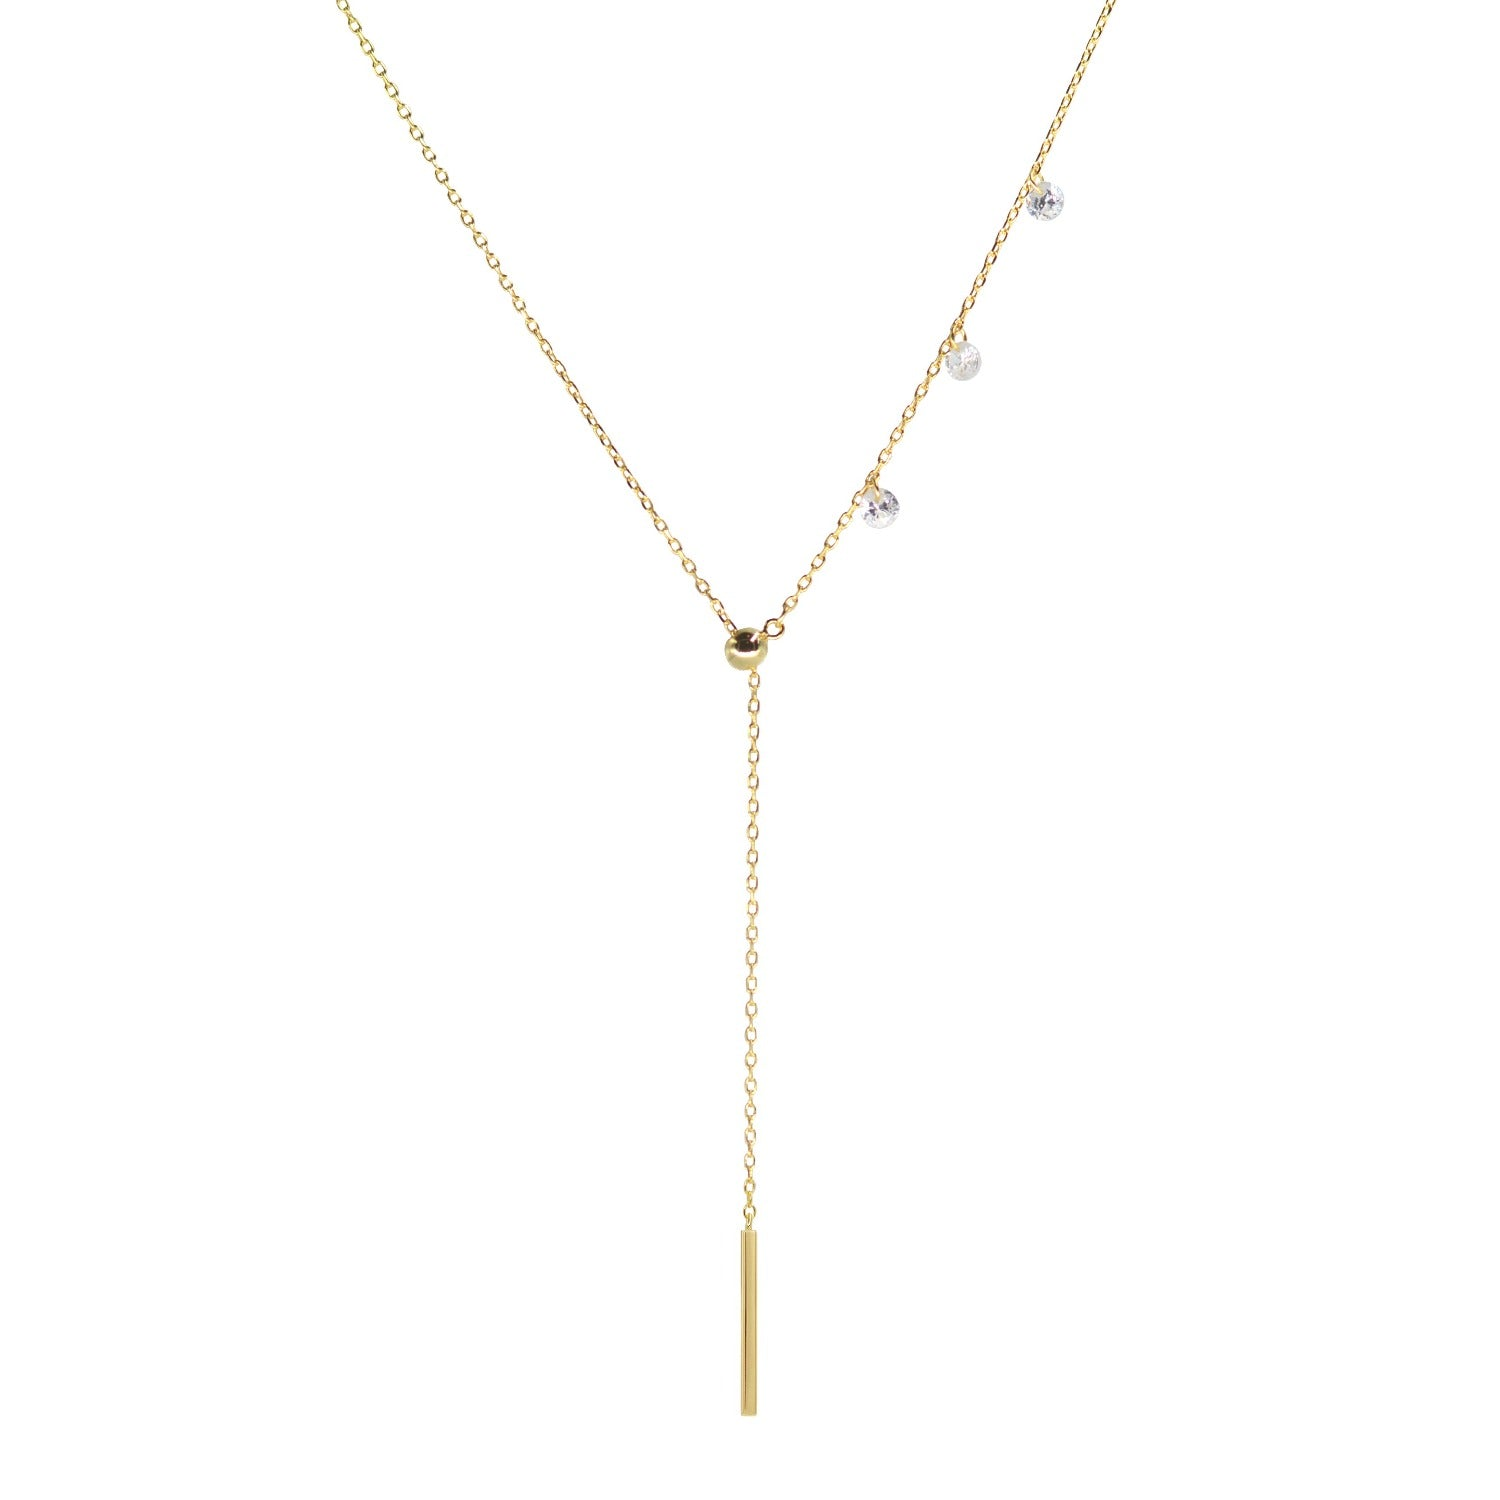 Double slider lariat necklace with mini bar in yellow gold